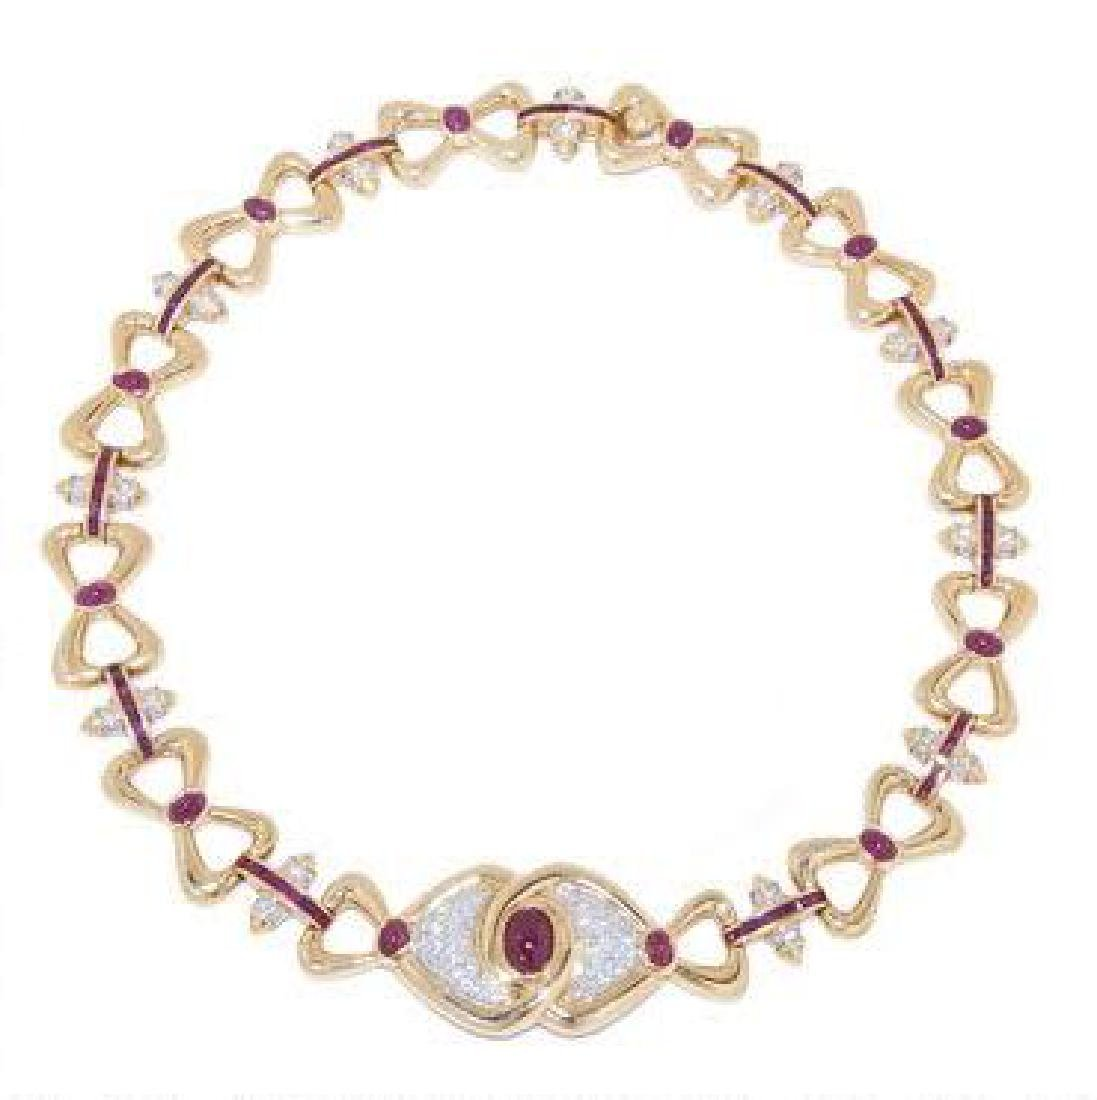 VERY FINE RUBY & DIAMOND NECKLACE